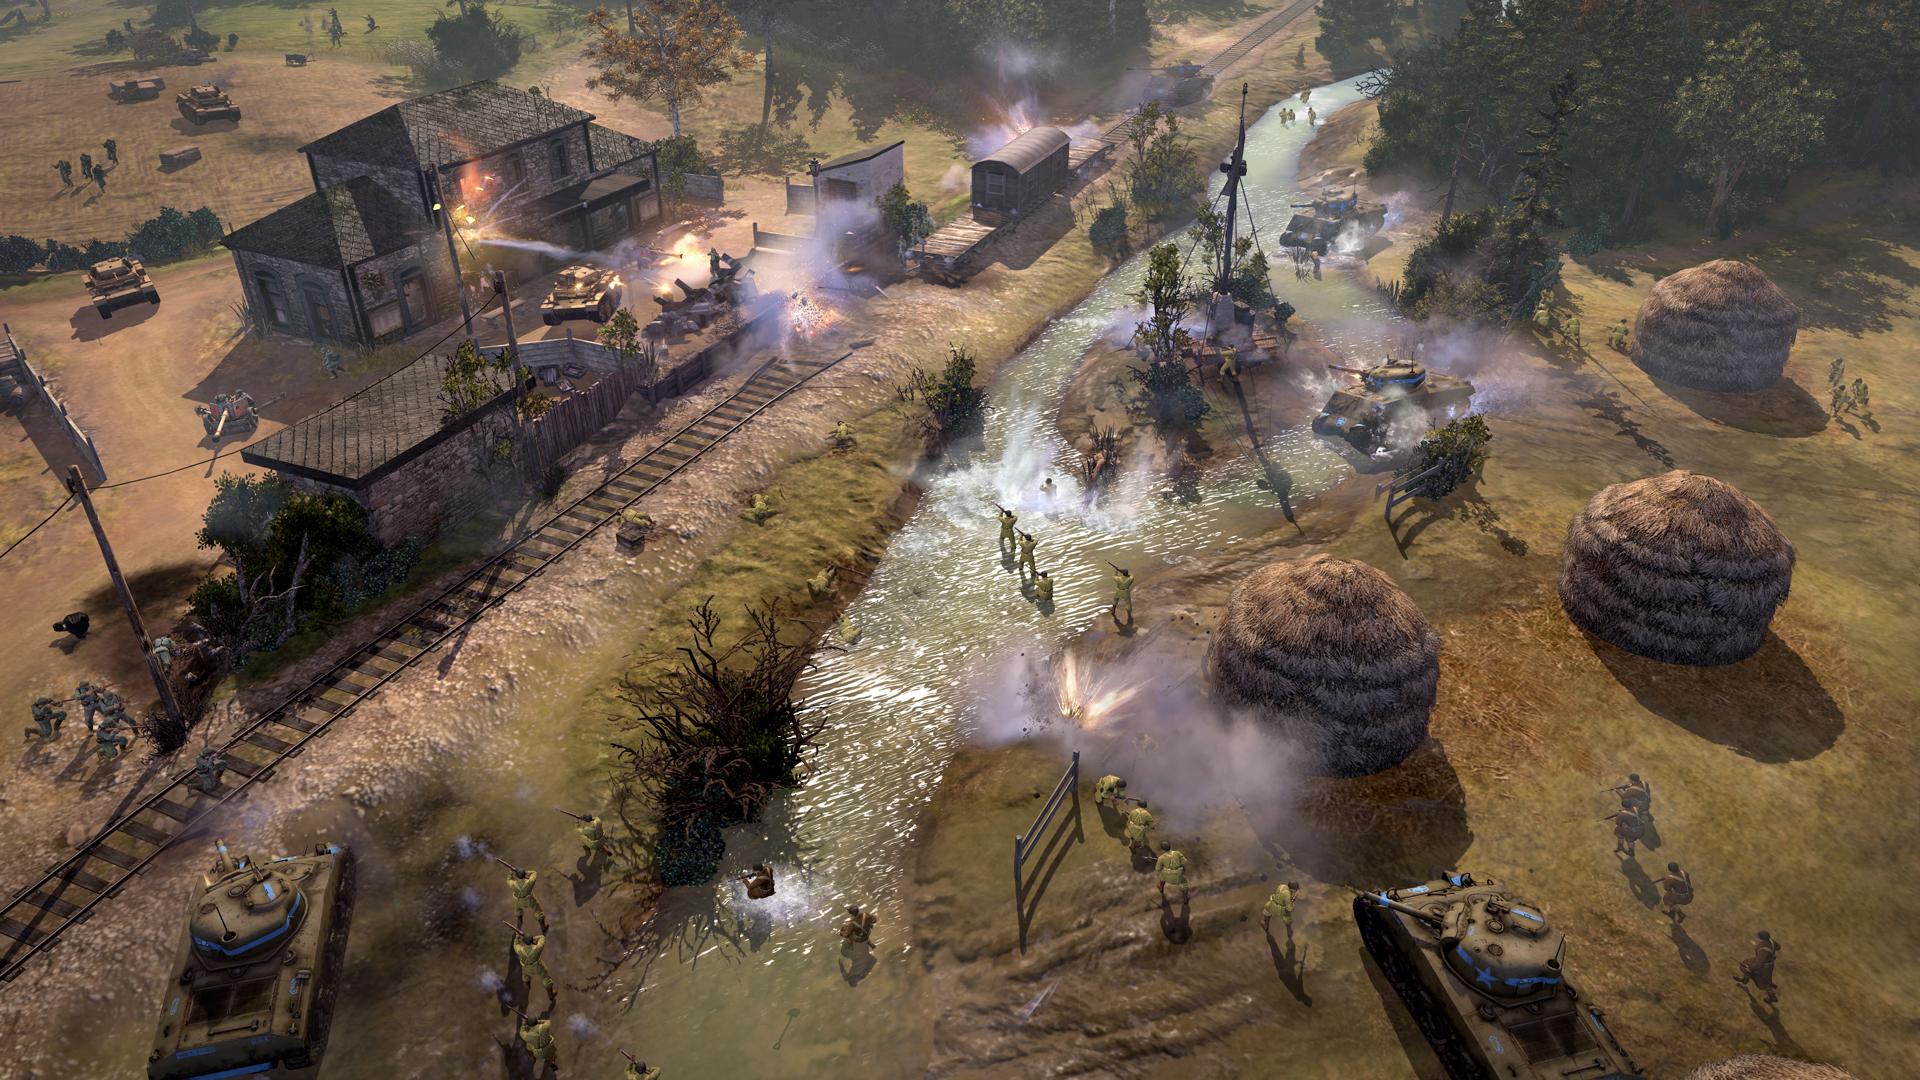 Coh 2 Case Blue : Buy company of heroes for mac and linux feral store